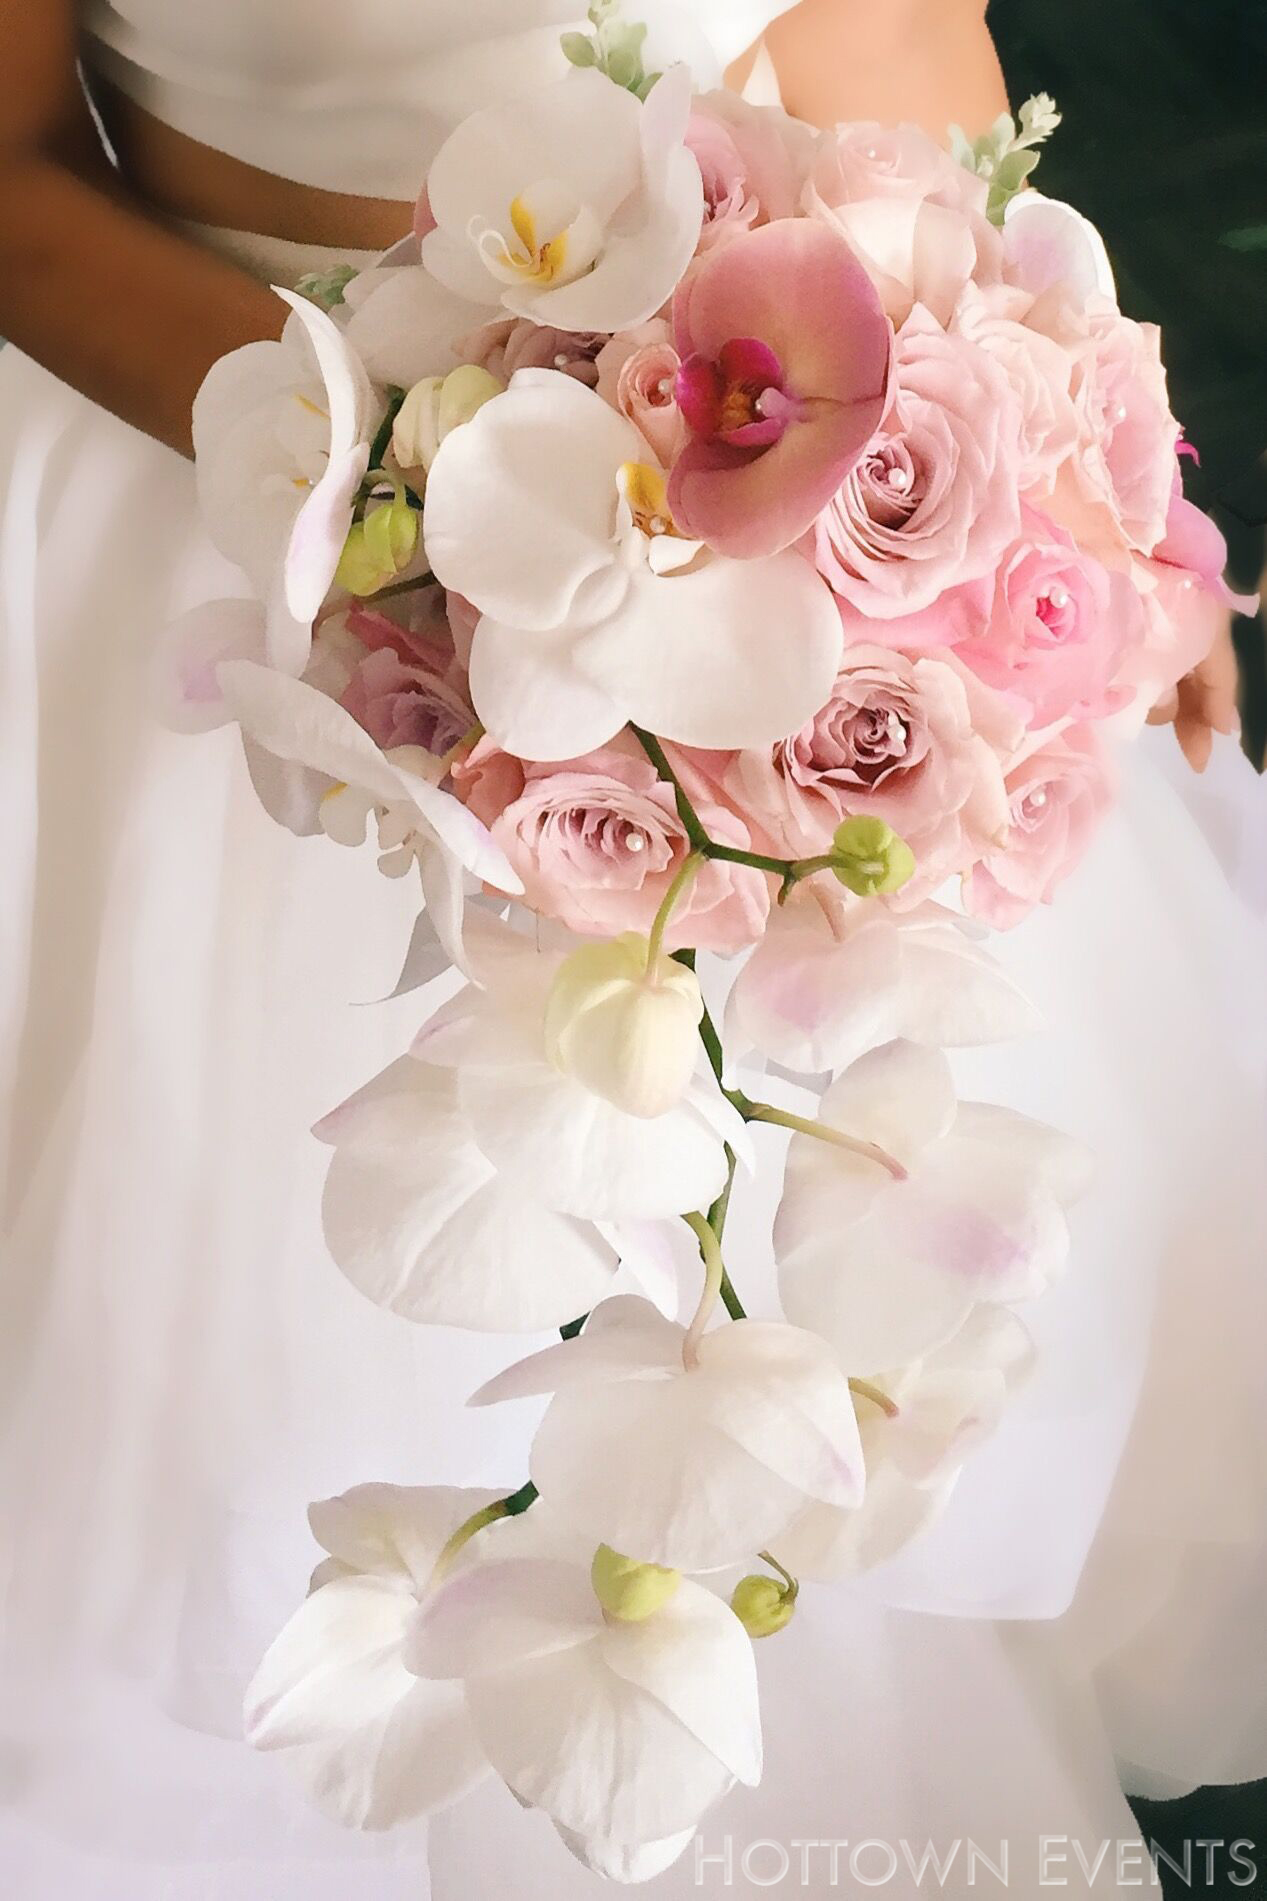 <h5>Bride Orchid Bouquet </h5>